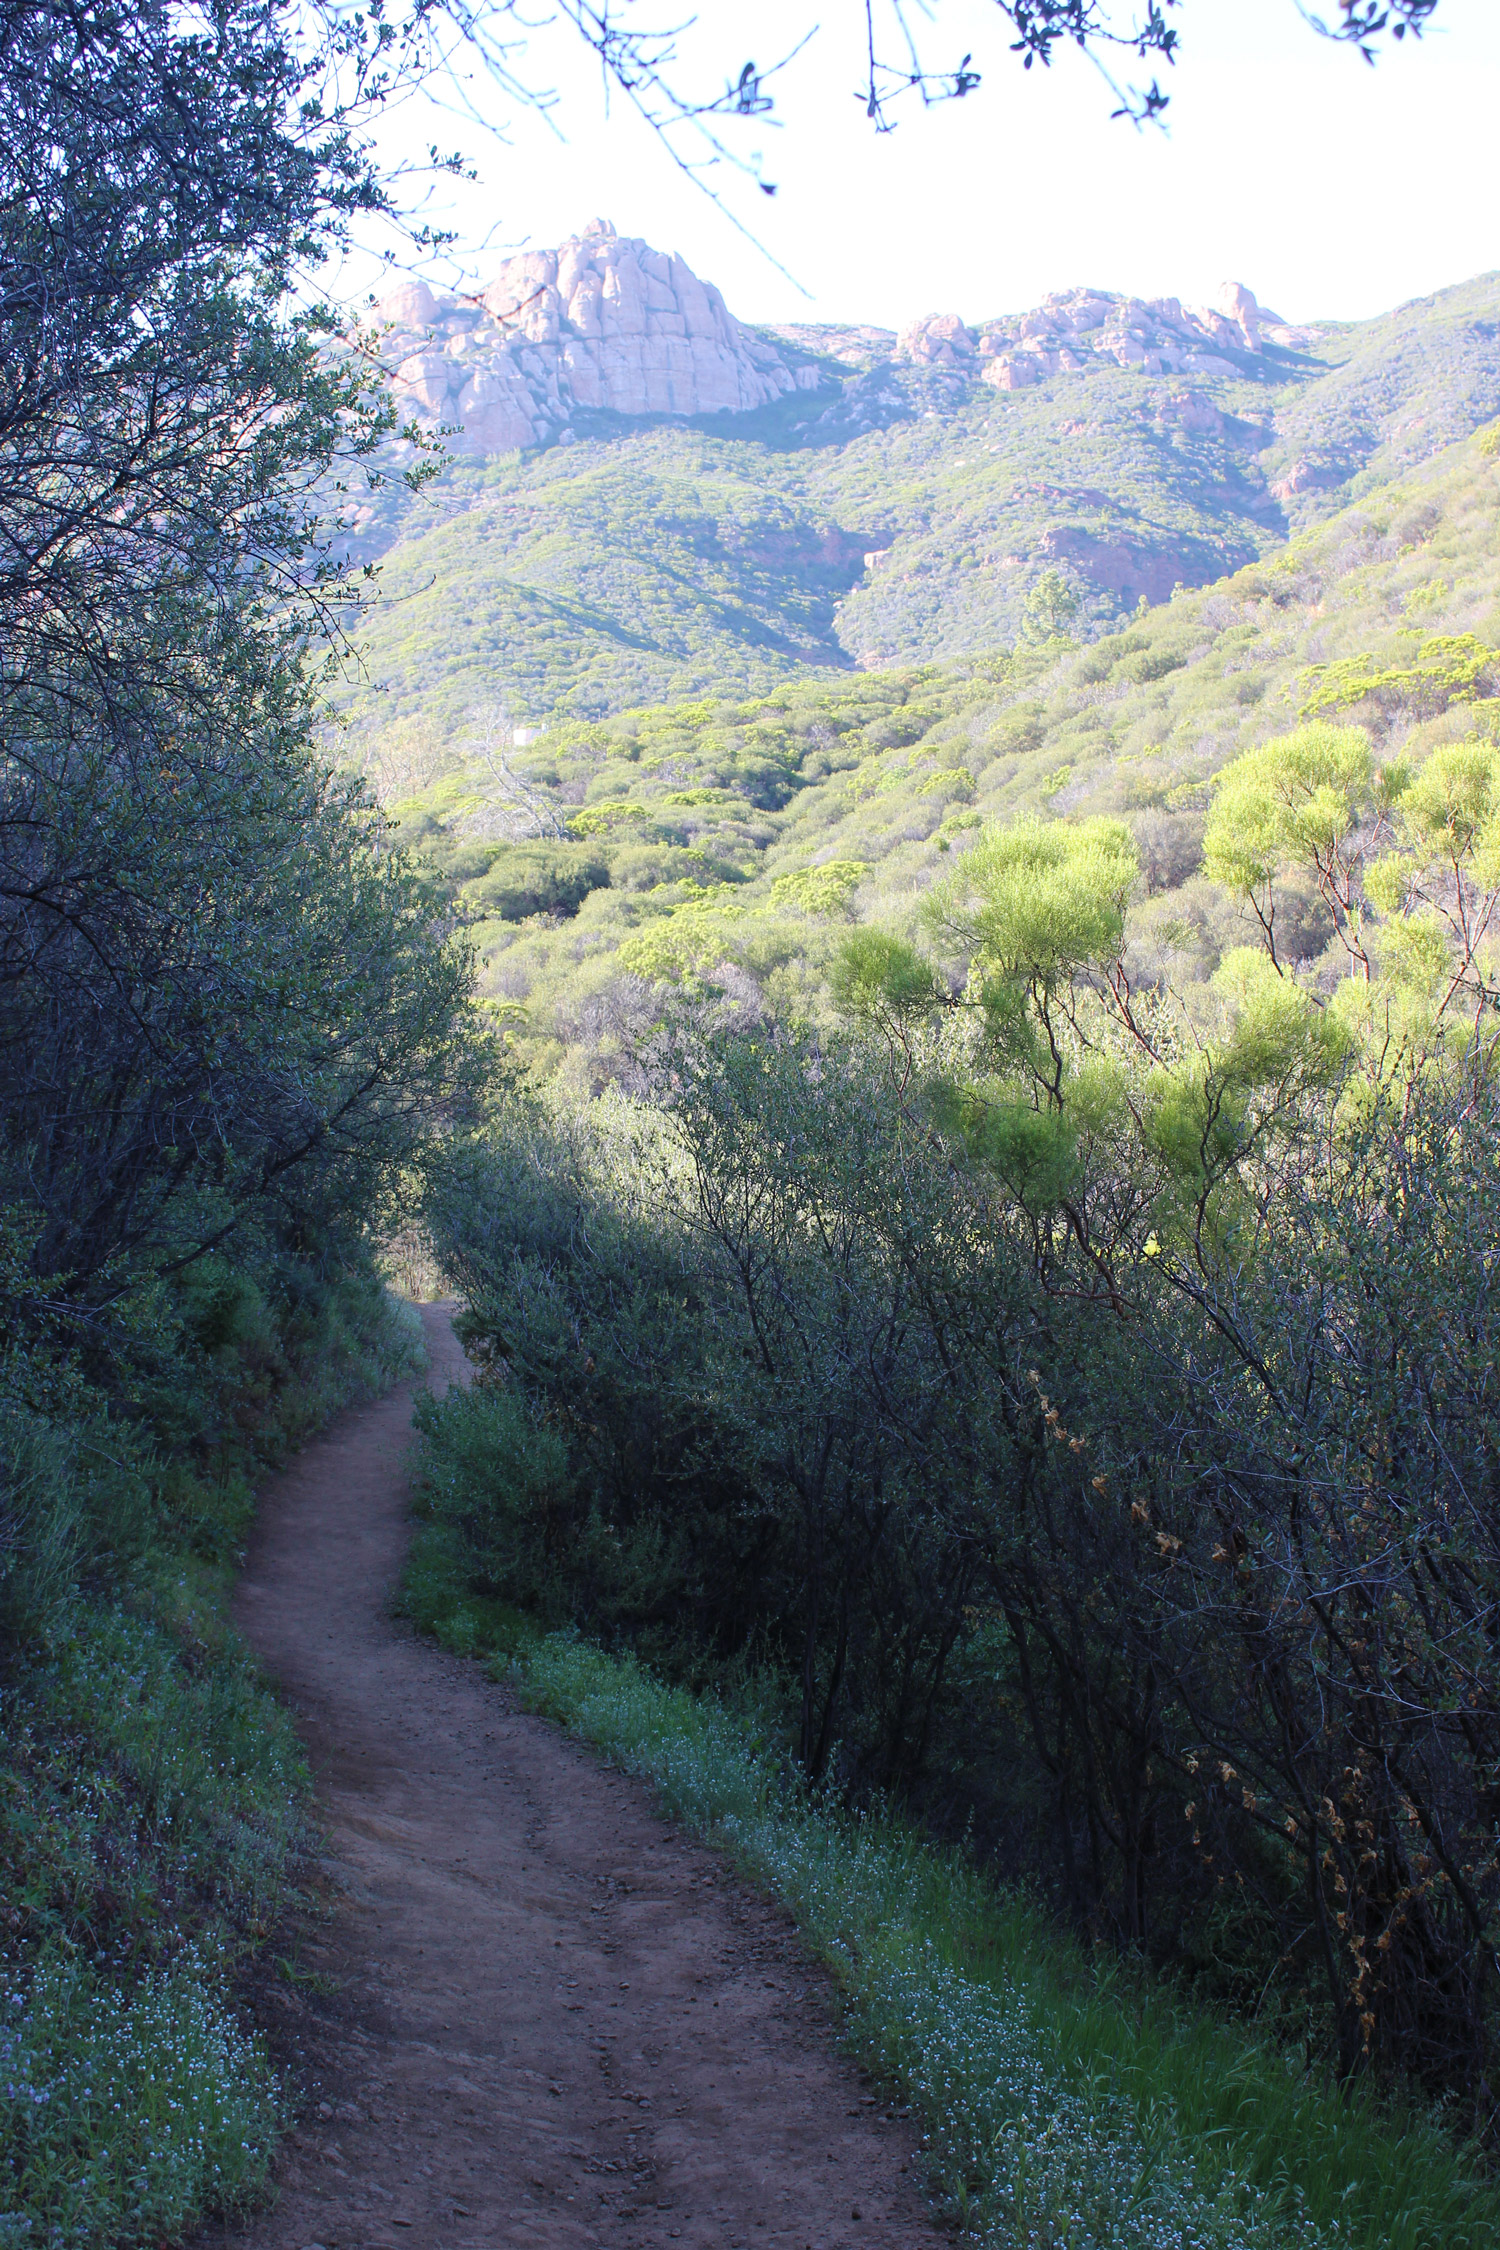 This is the trail heading home.